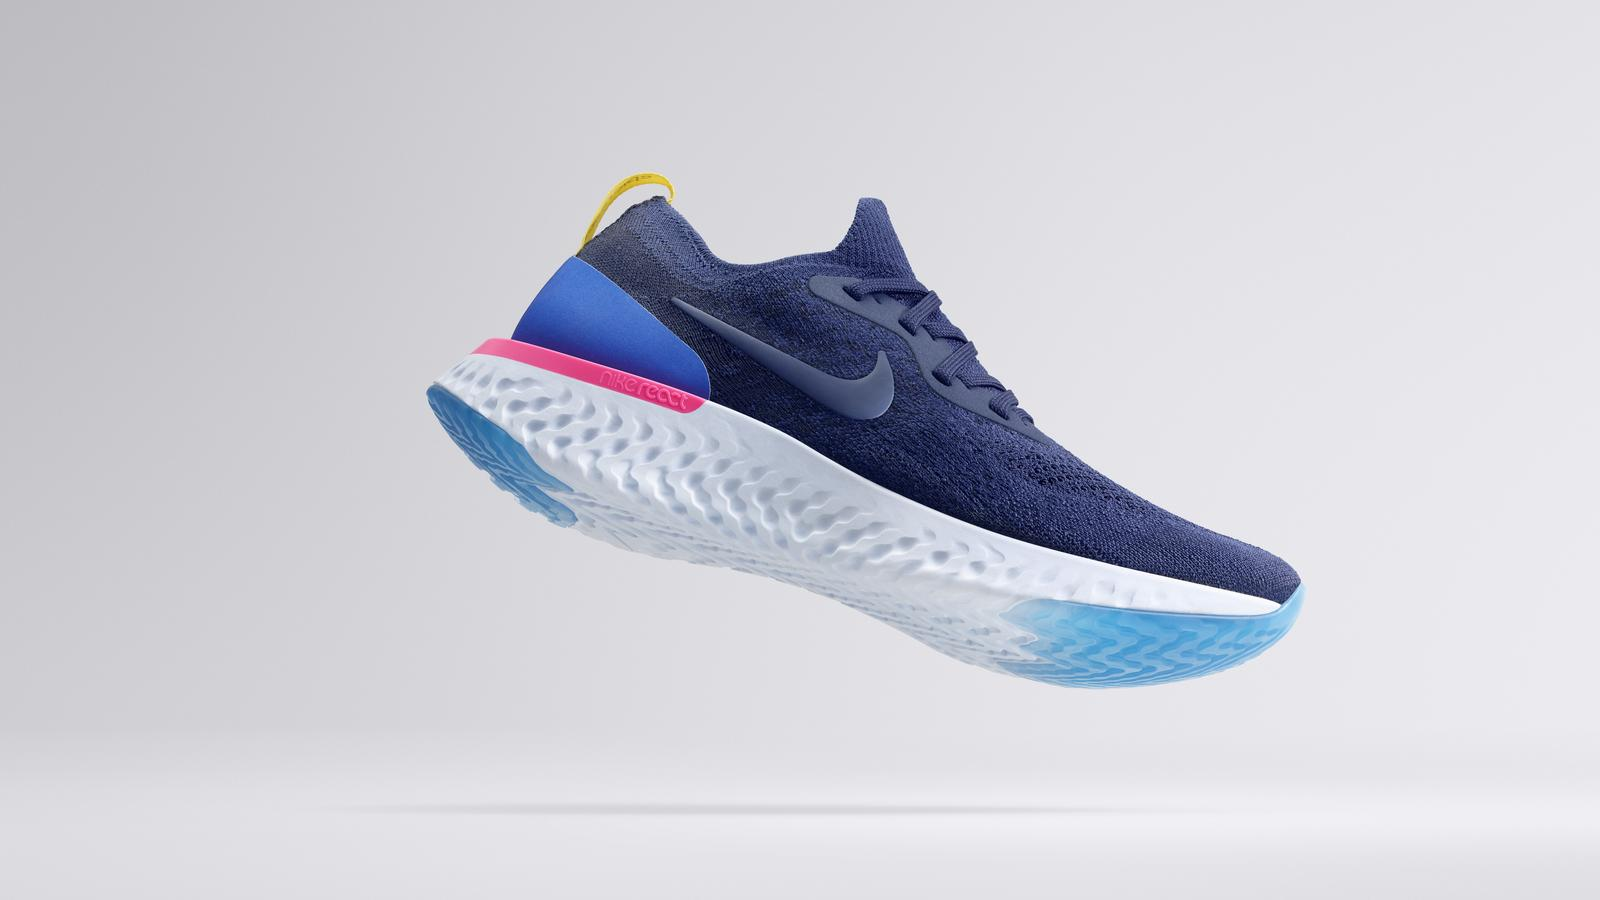 Nike unveil new Epic React Flyknit in hope to seriously dominate the running game